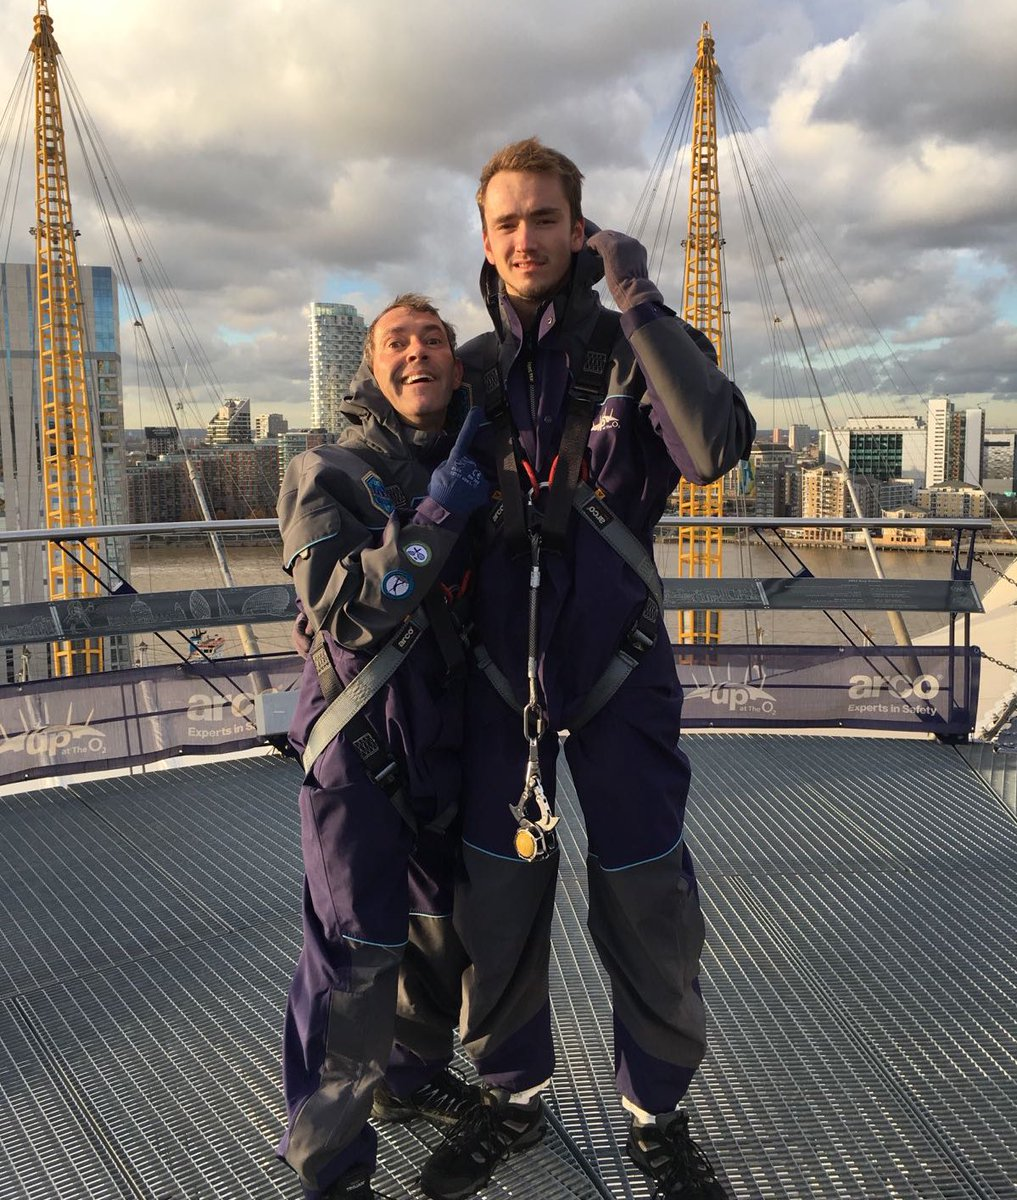 From the roof of The O2 to the top of the world 🏆  It has been a incredible journey @DaniilMedwed ❤️ #FightSmart https://t.co/loSOP1OcDc